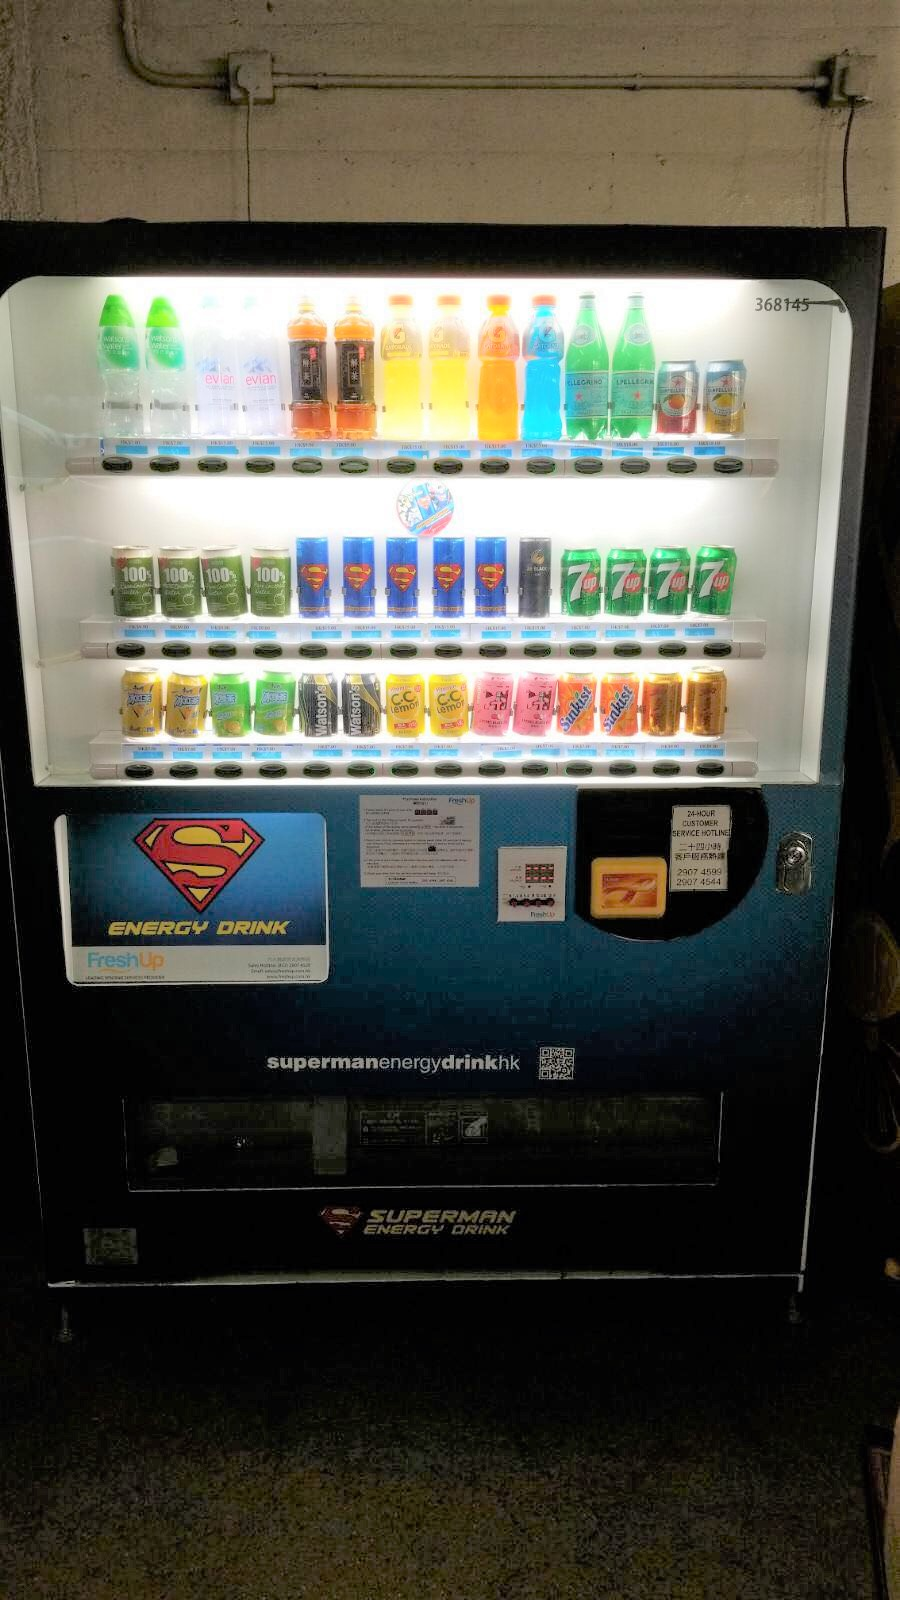 Freshup, vending machine hk, interactive, food, beverage, smart retail, convenient, vending services, professional, corporations, the star ferry, pier